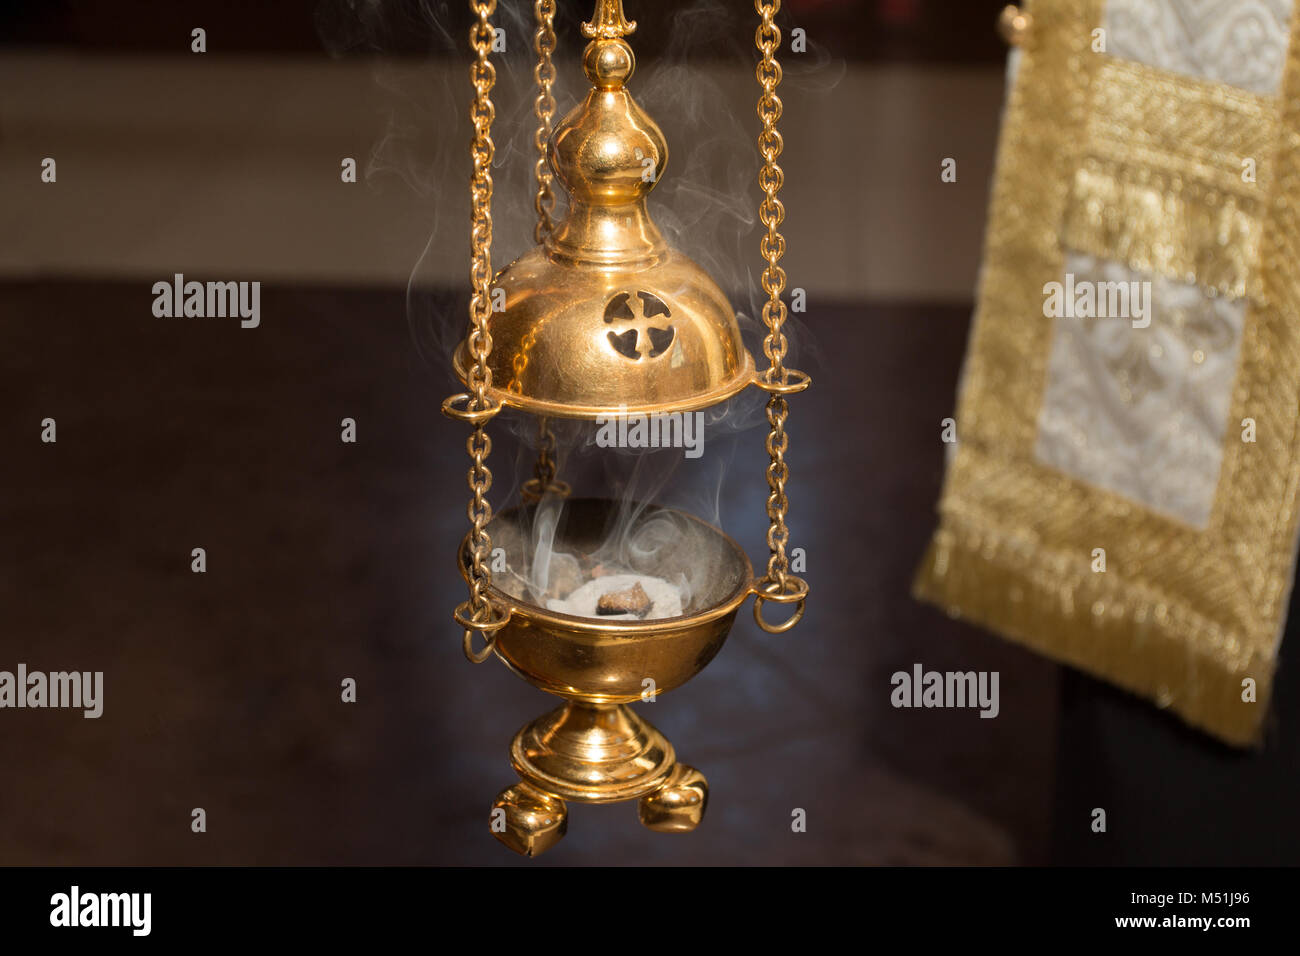 Church censer of golden color with smoke - Stock Image